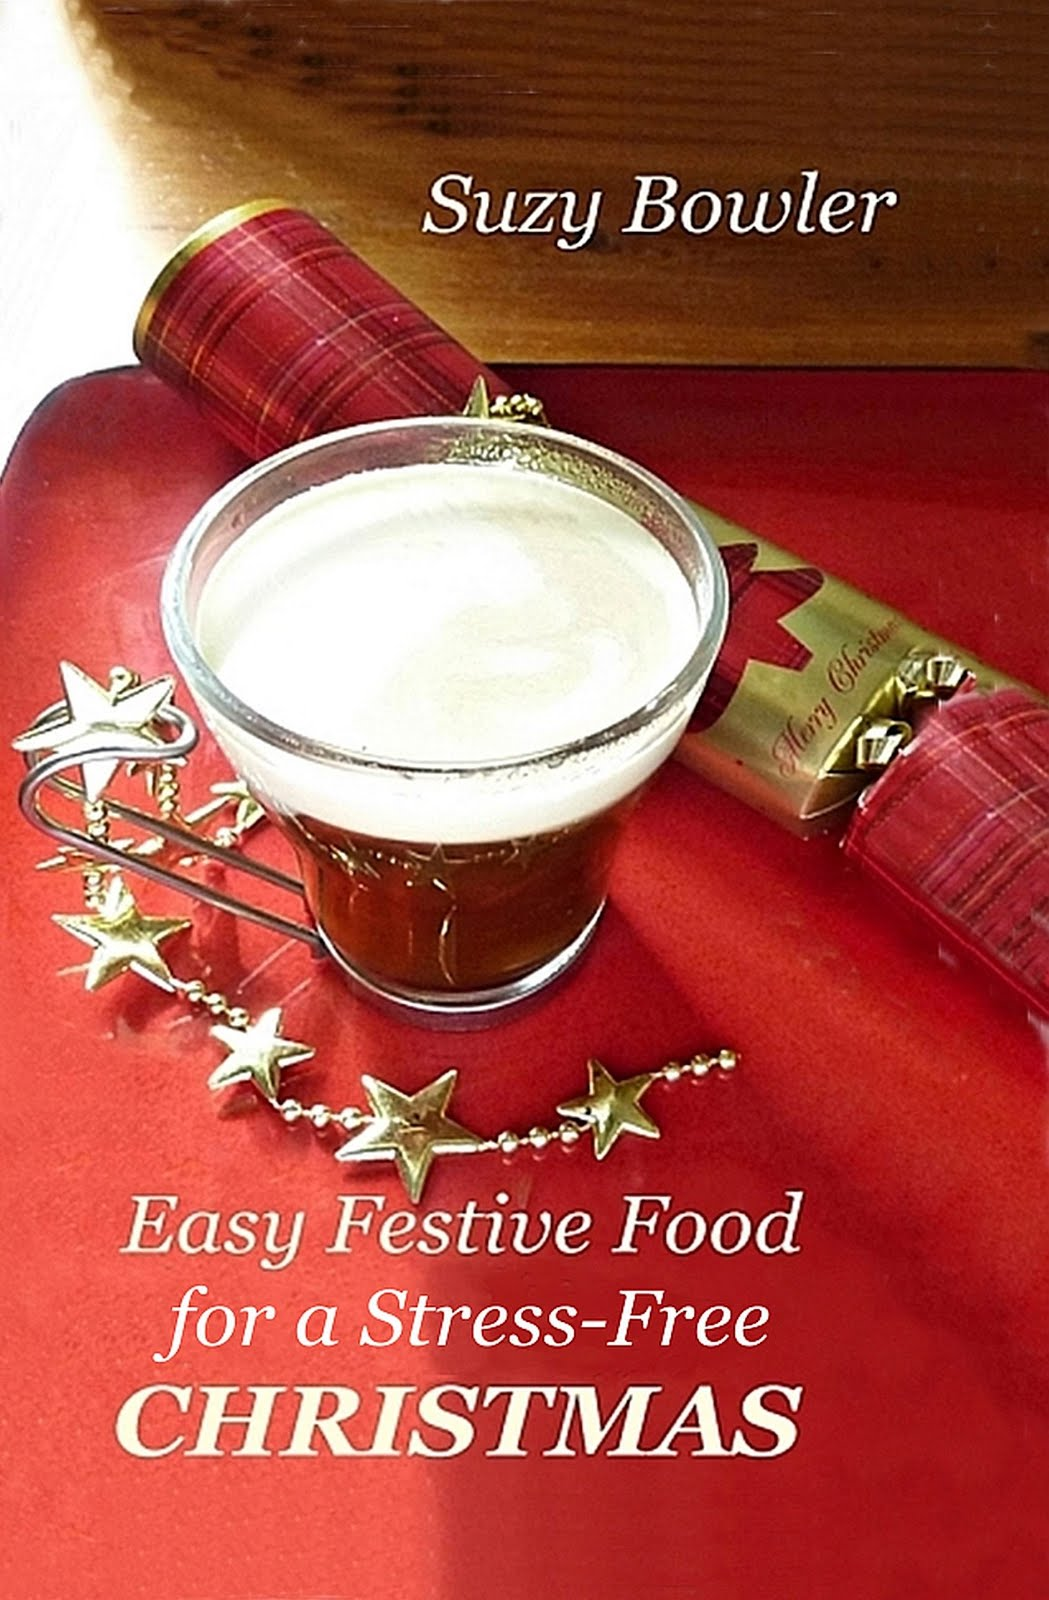 For Relaxing Christmas Eating: